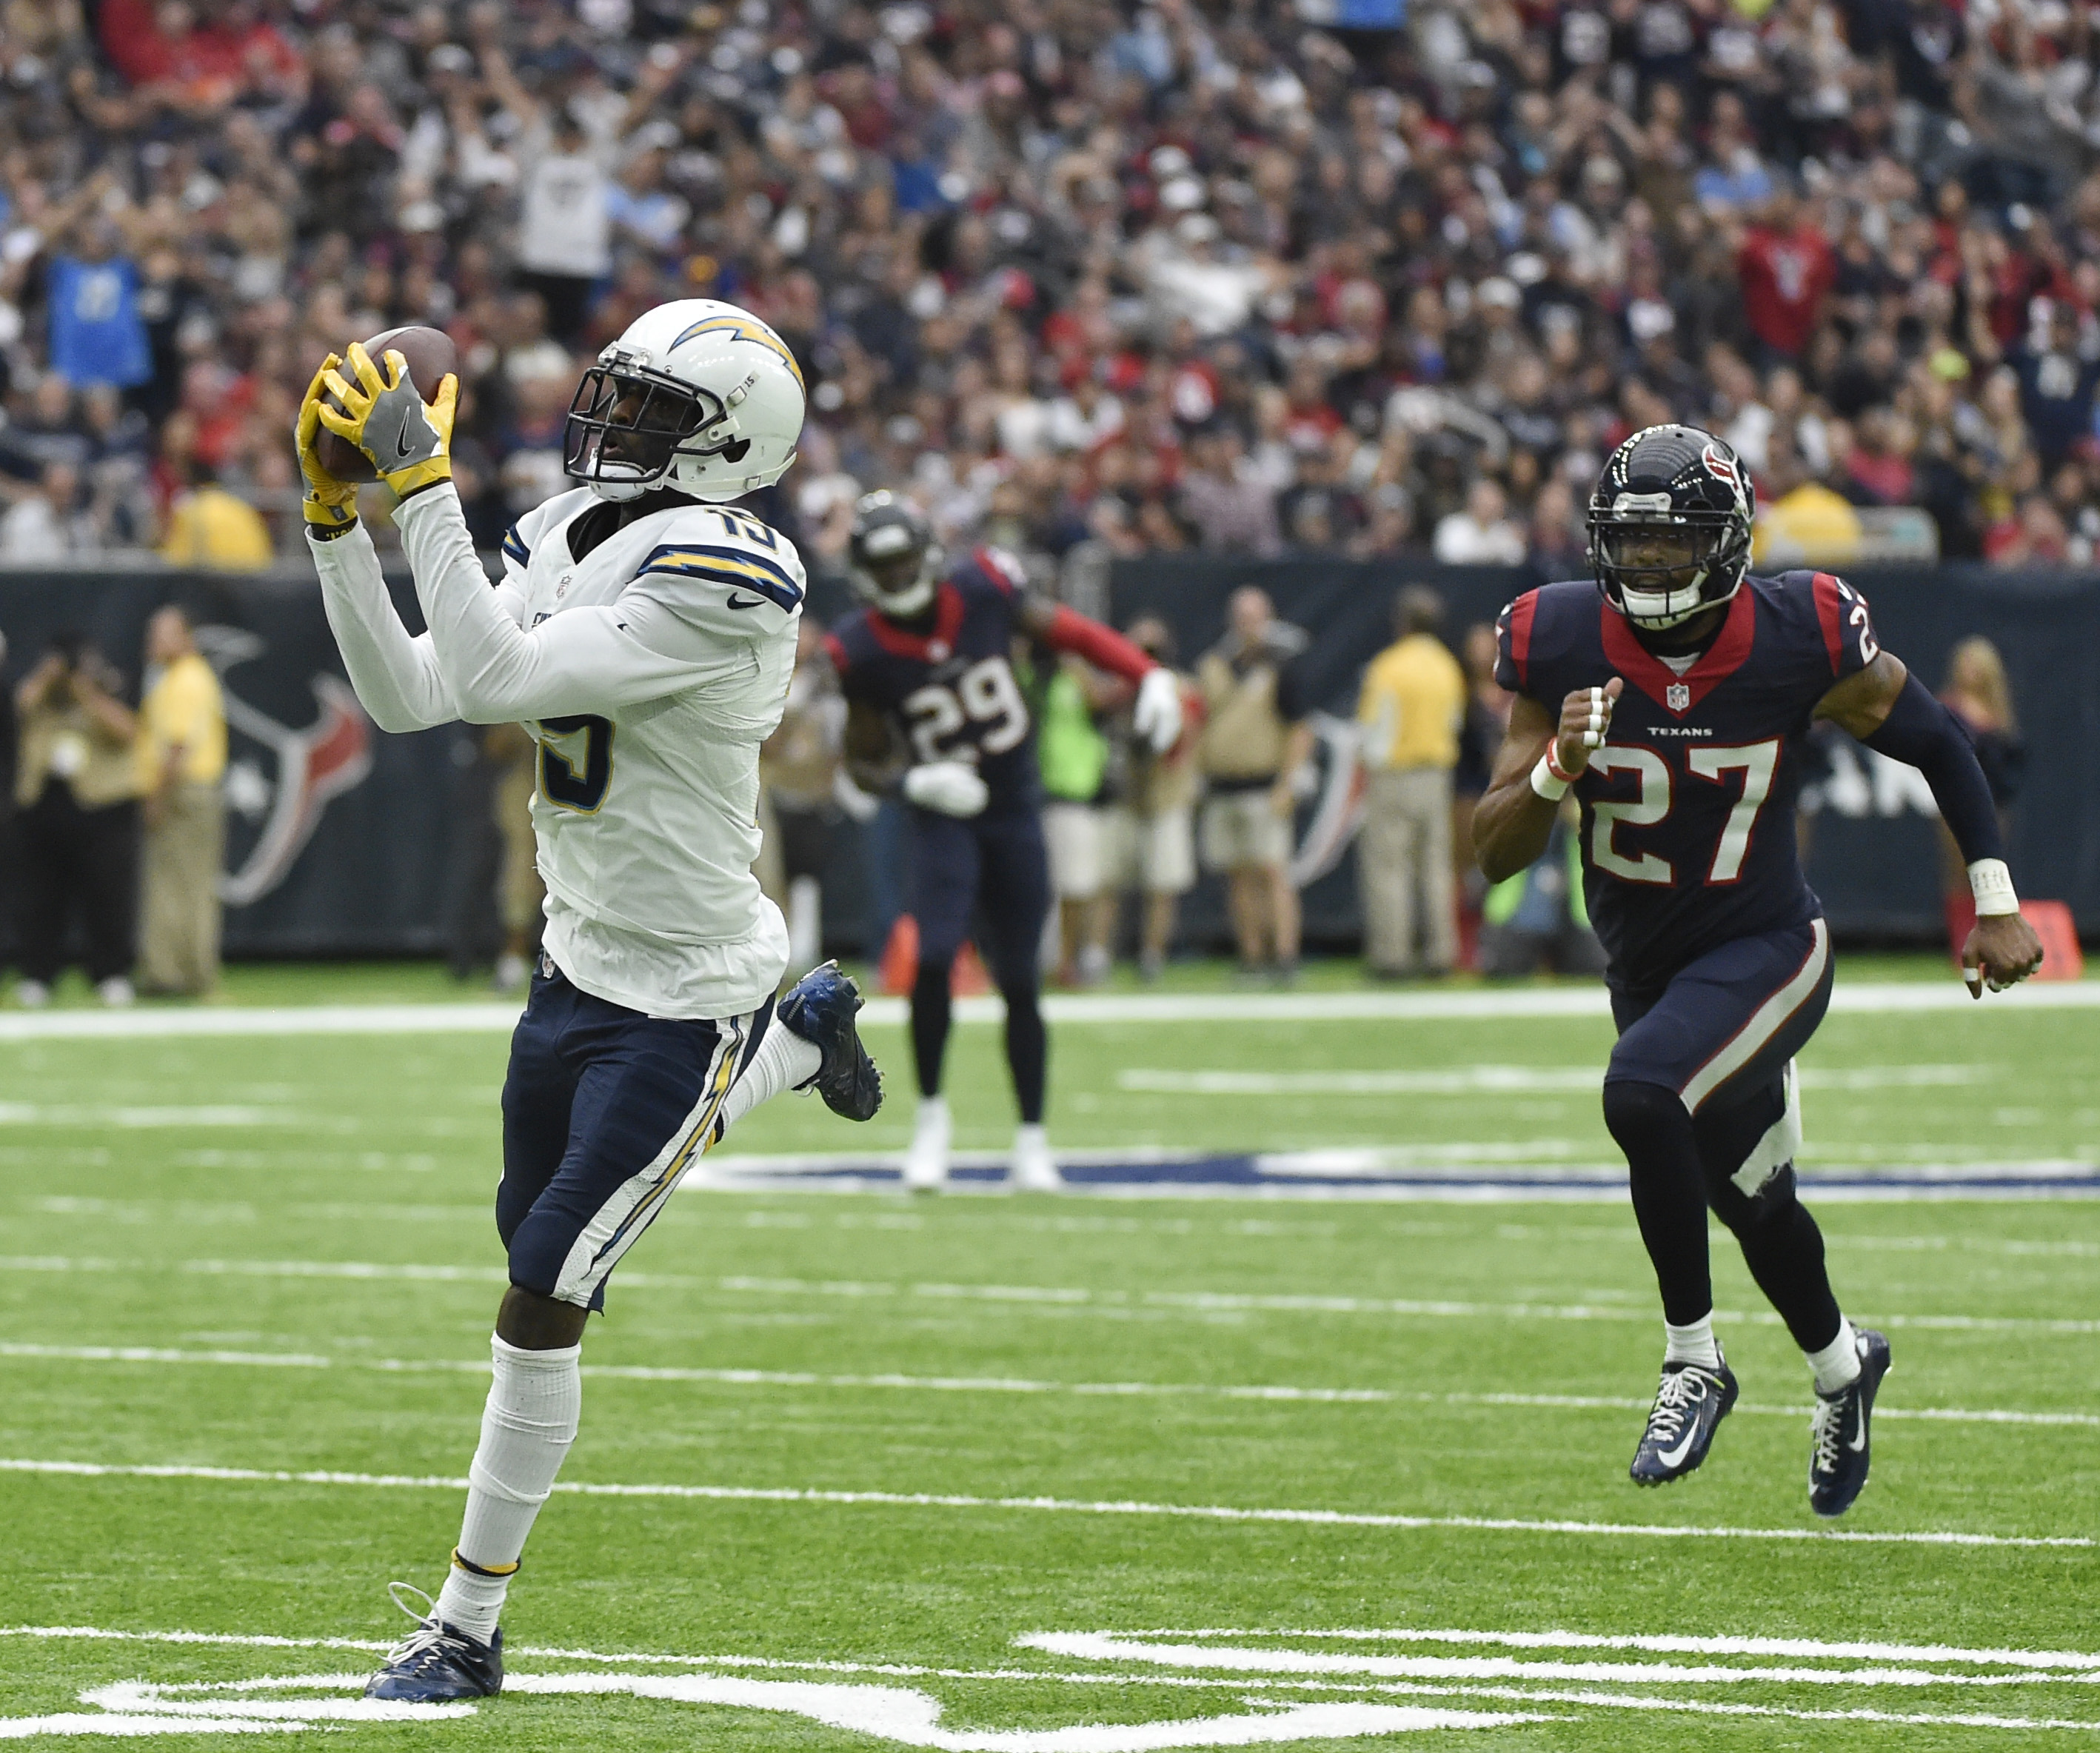 San Diego Chargers' Dontrelle Inman pulls in a pass in front of Houston Texans' Quintin Demps on his way to a 52-yard touchdown play during the first half of an NFL football game, Sunday, Nov. 27, 2016, in Houston. (AP Photo/Eric Christian Smith)